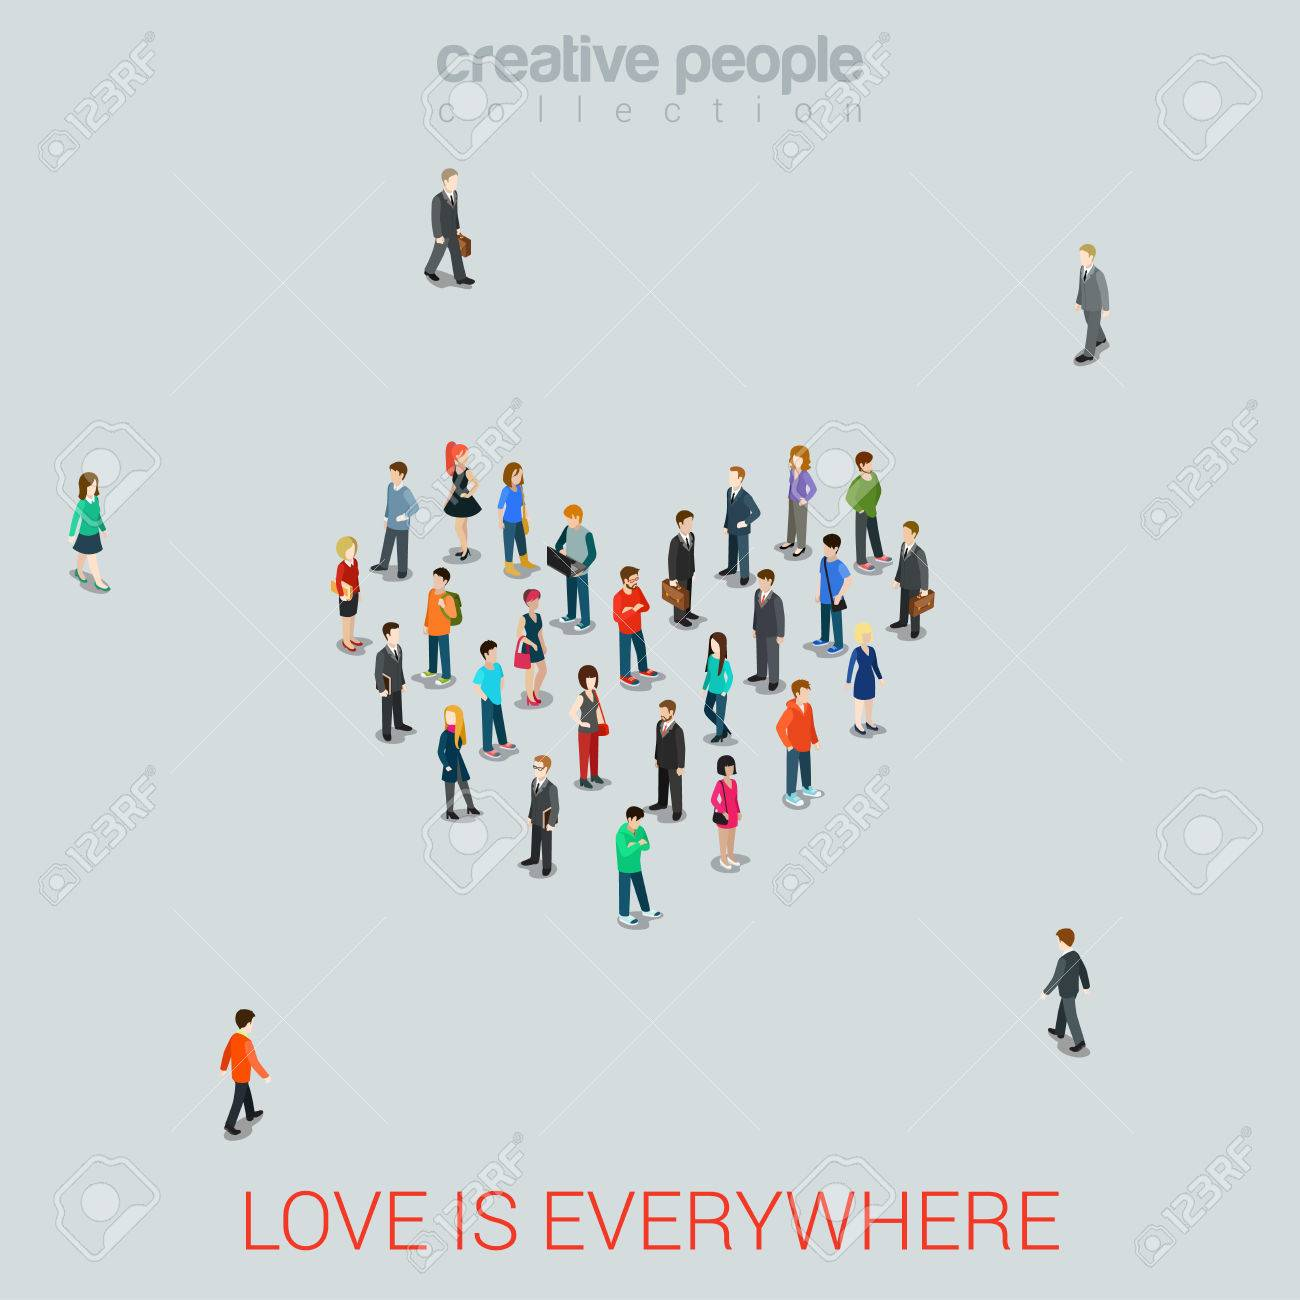 People standing as Heart shape flat isometric 3d style vector illustration. Love concept idea. Creative people collection. Stock Vector - 48578505